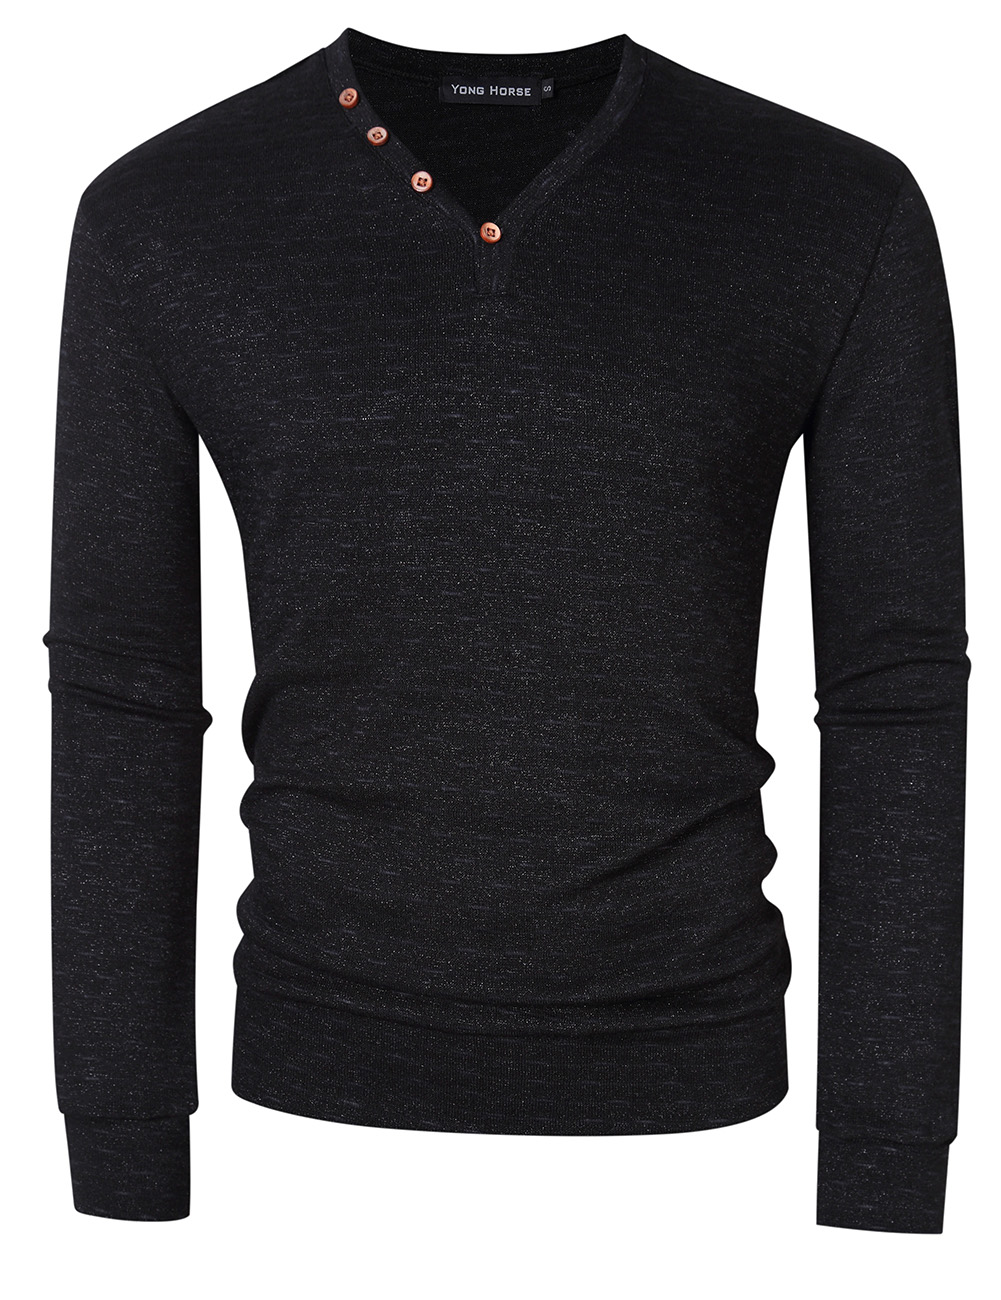 [US Direct] Yong Horse Men's Textured Slim Fit Long Sleeve V Neck Casual Henley Shirt with 4-Button Decor Black_2XL